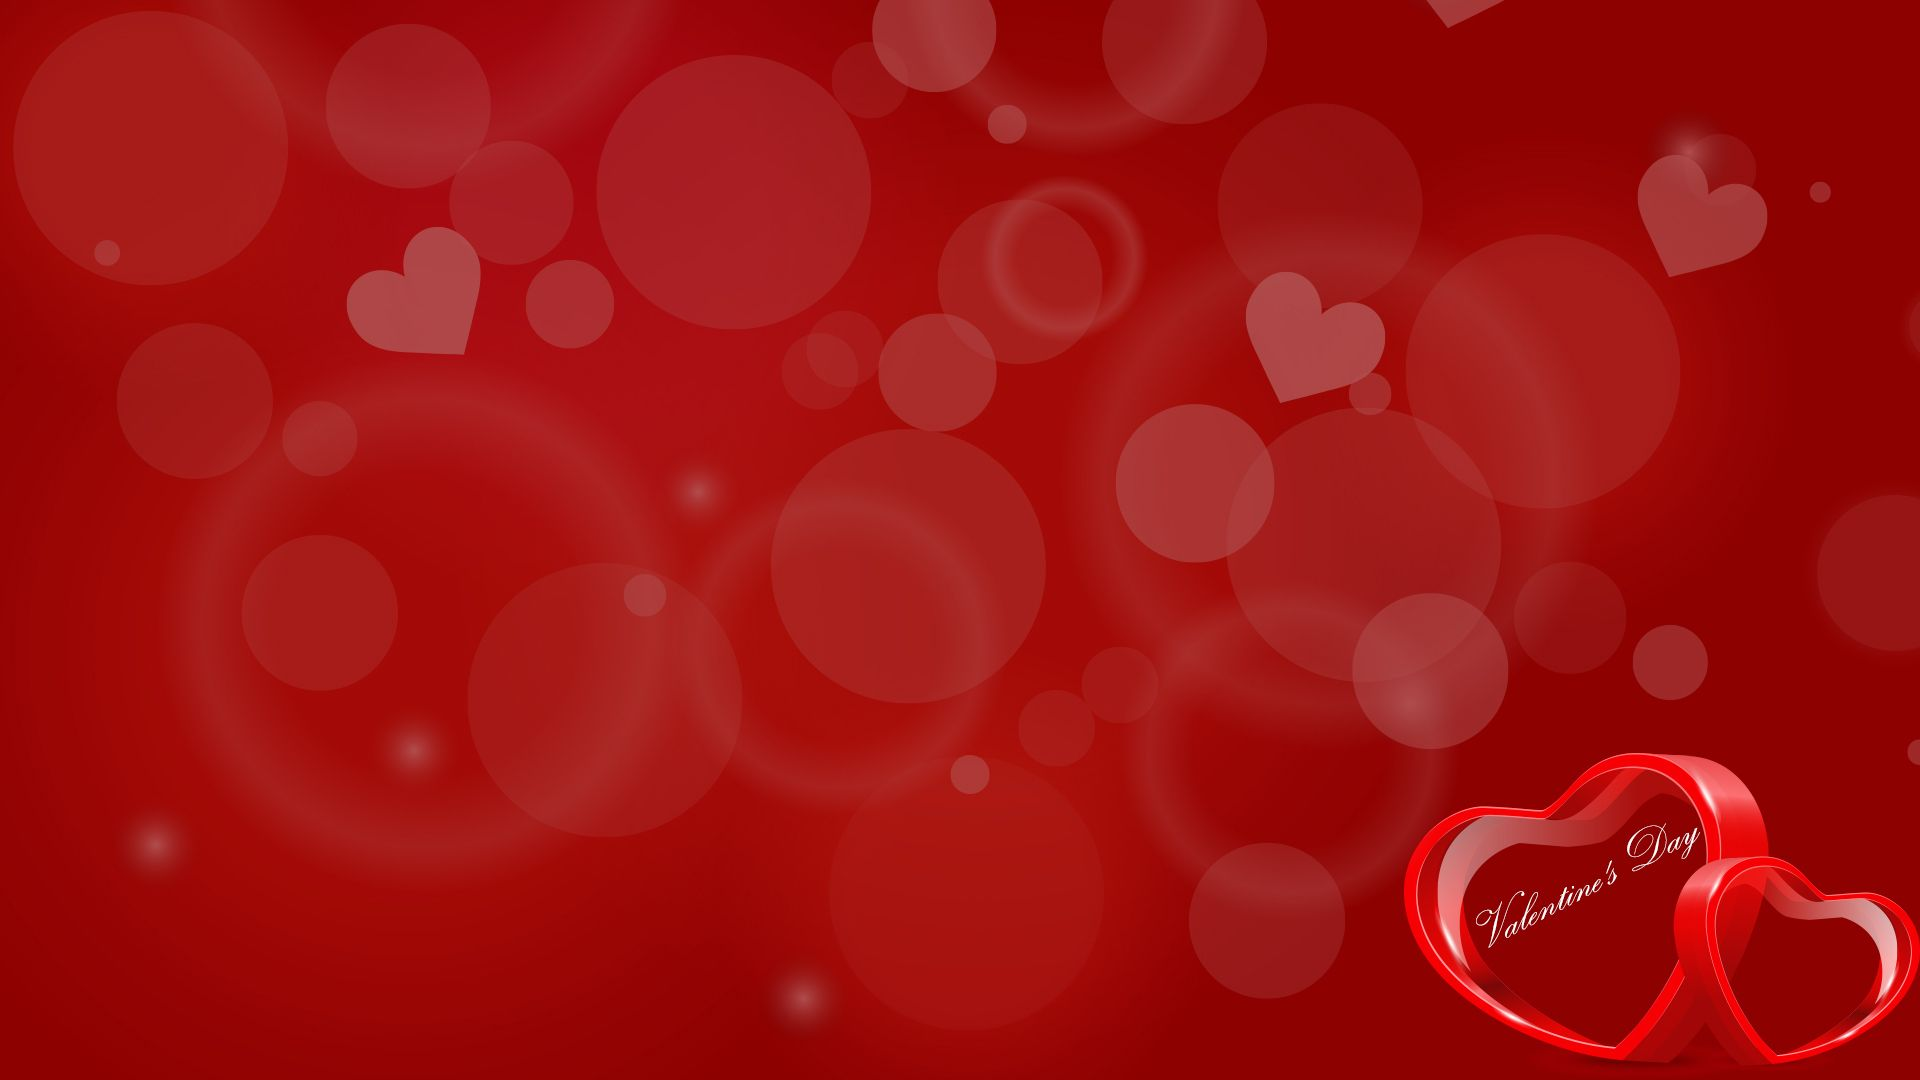 Valentines Day Heart Backgrounds For Powerpoint Love Ppt Within Valentine Powerpoint Templat Valentines Day Background Valentines Day Hearts Heart Background